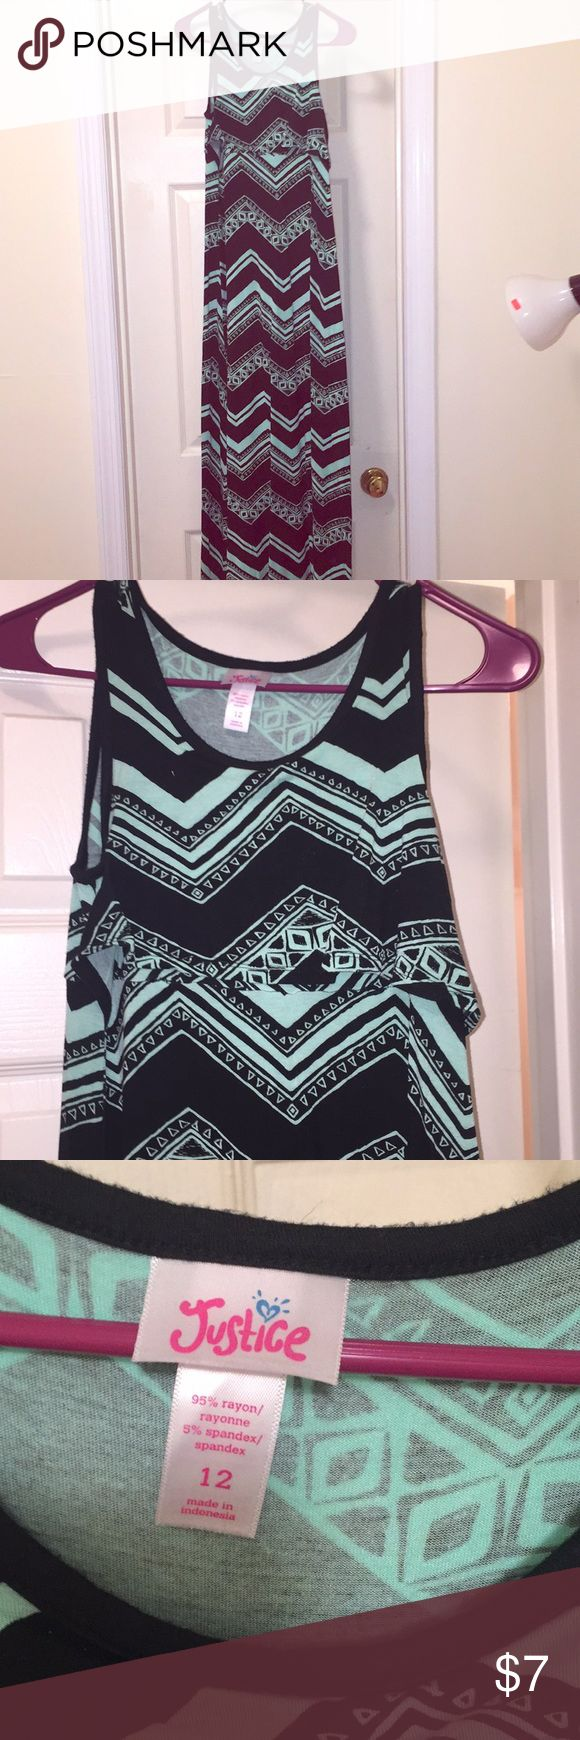 Girls tank maxi dress Black and green Aztec pattern maxi dress from JUSTICE. size 12. Justice Dresses Casual